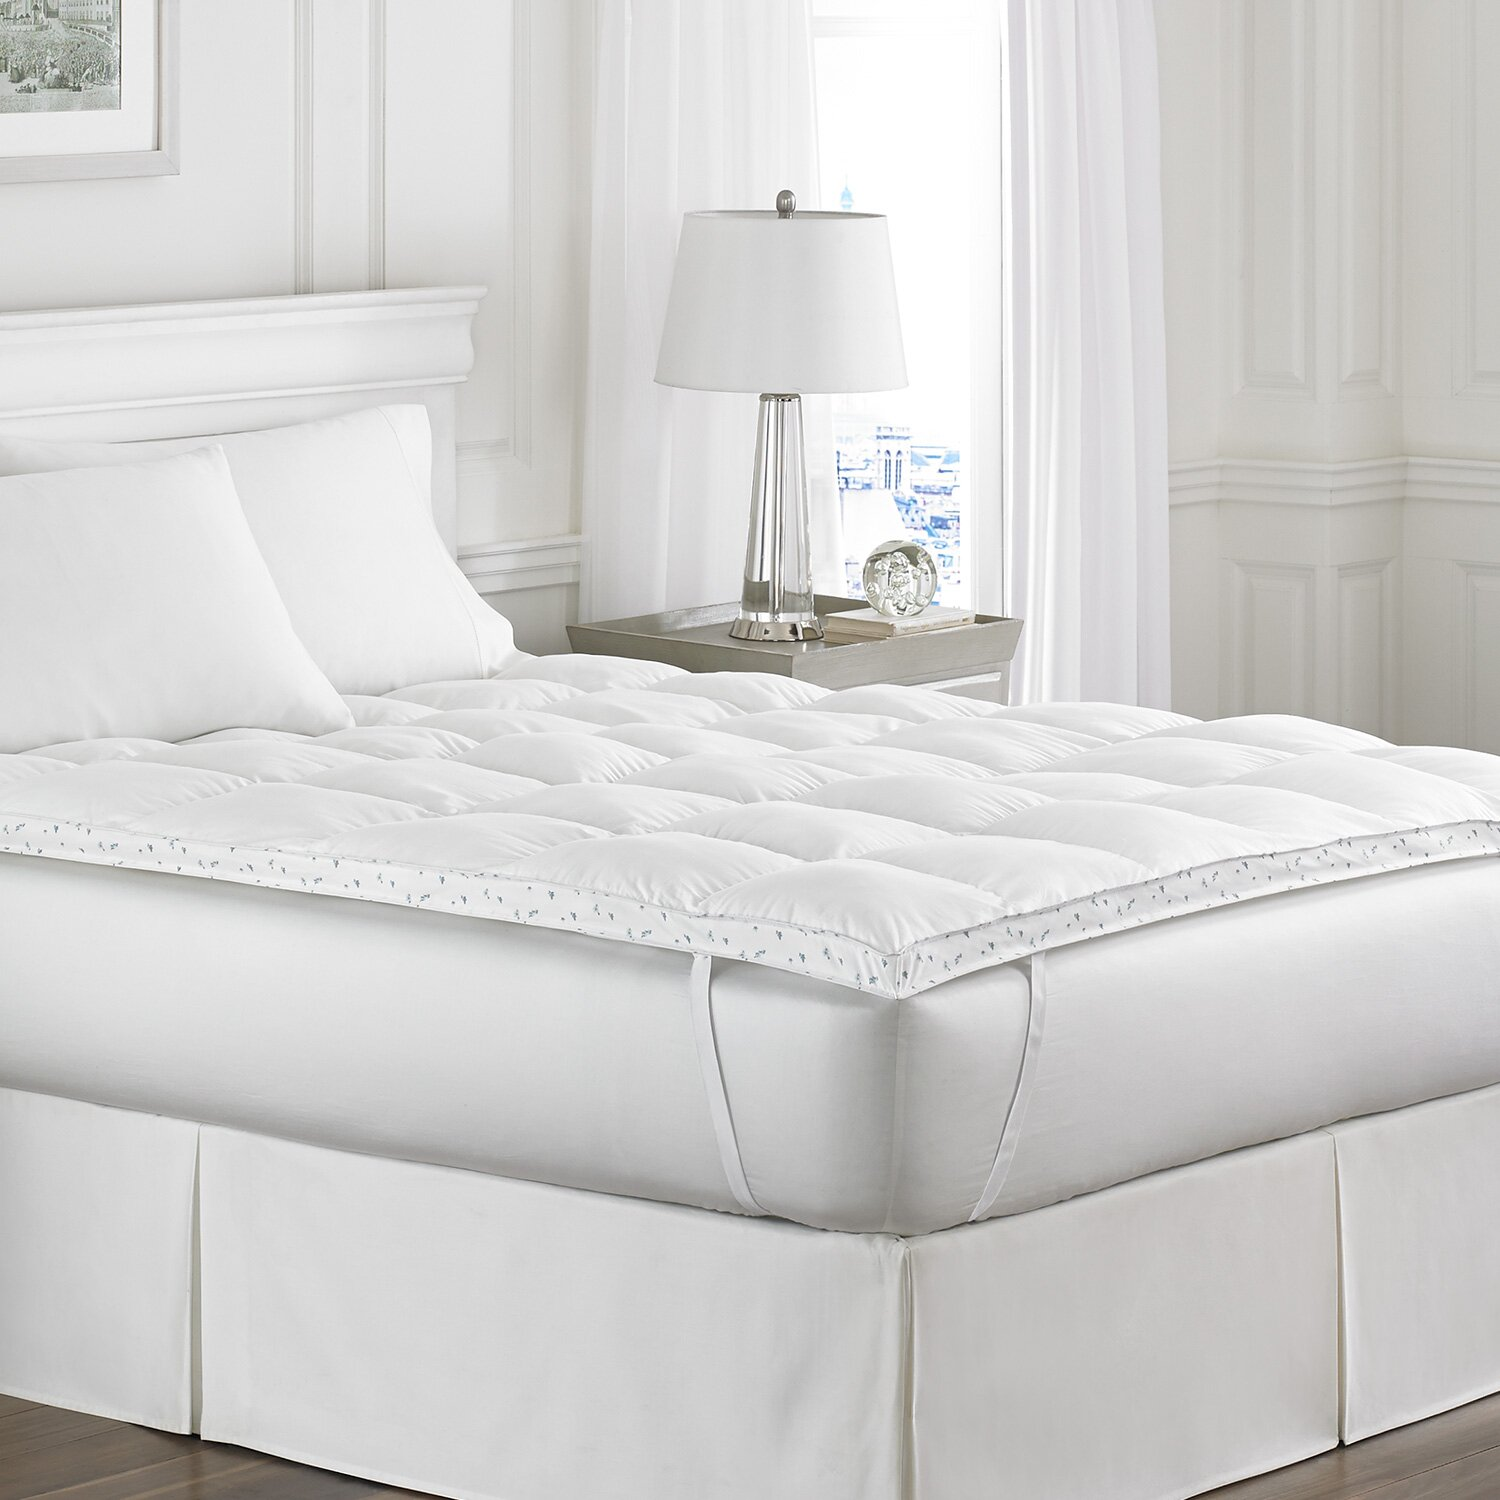 Laura Ashley Fiber Bed Queen